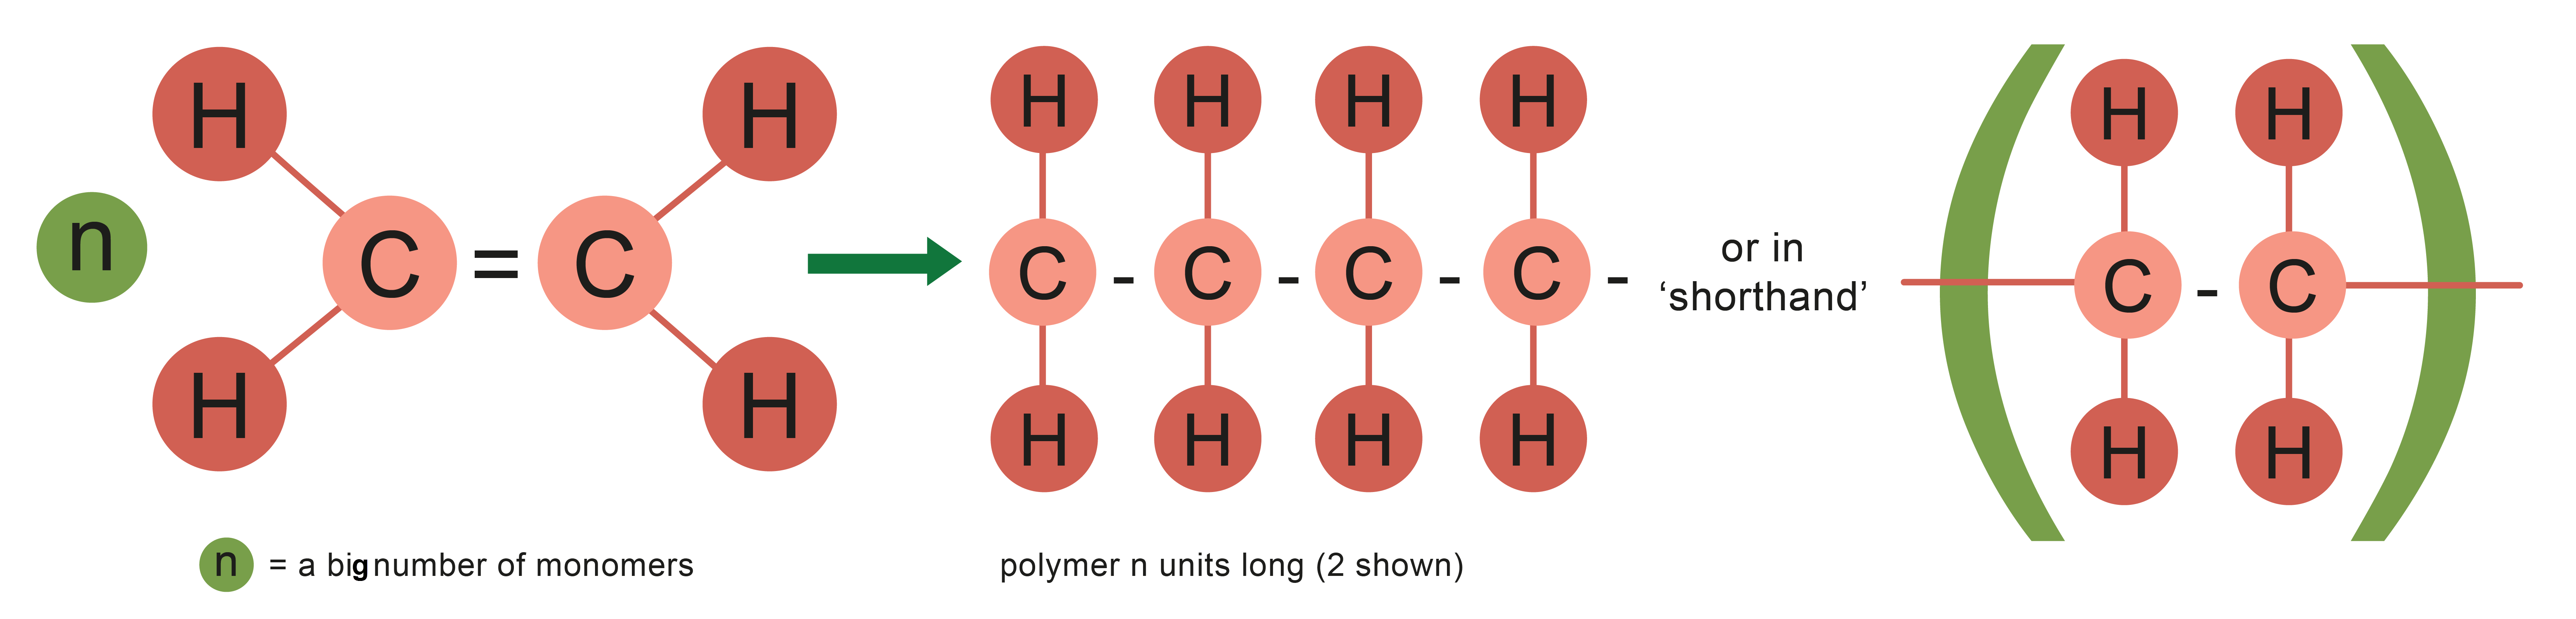 An image showing how an alkene is made into a long chain polymer.